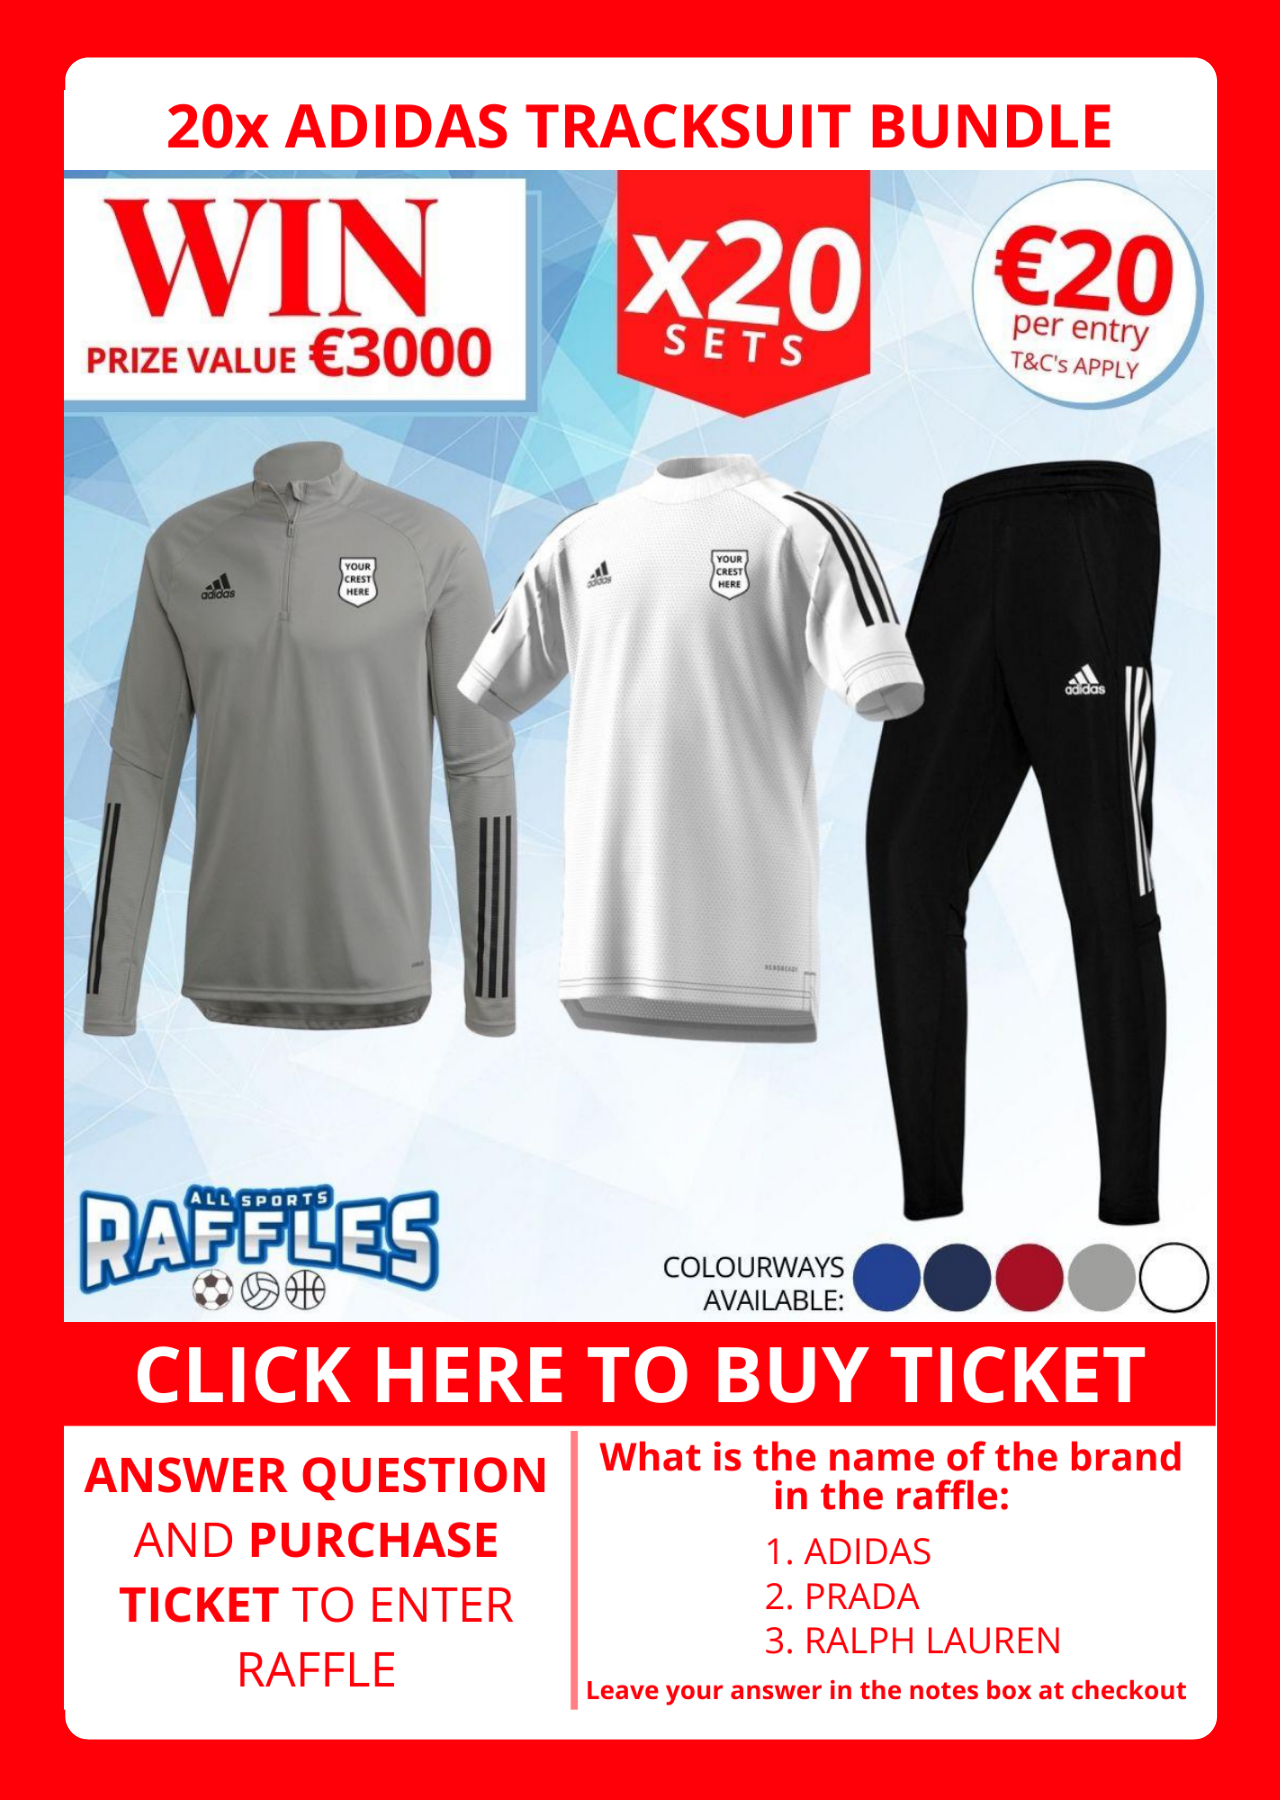 Win 20 sets of leisurewear for only €20 here